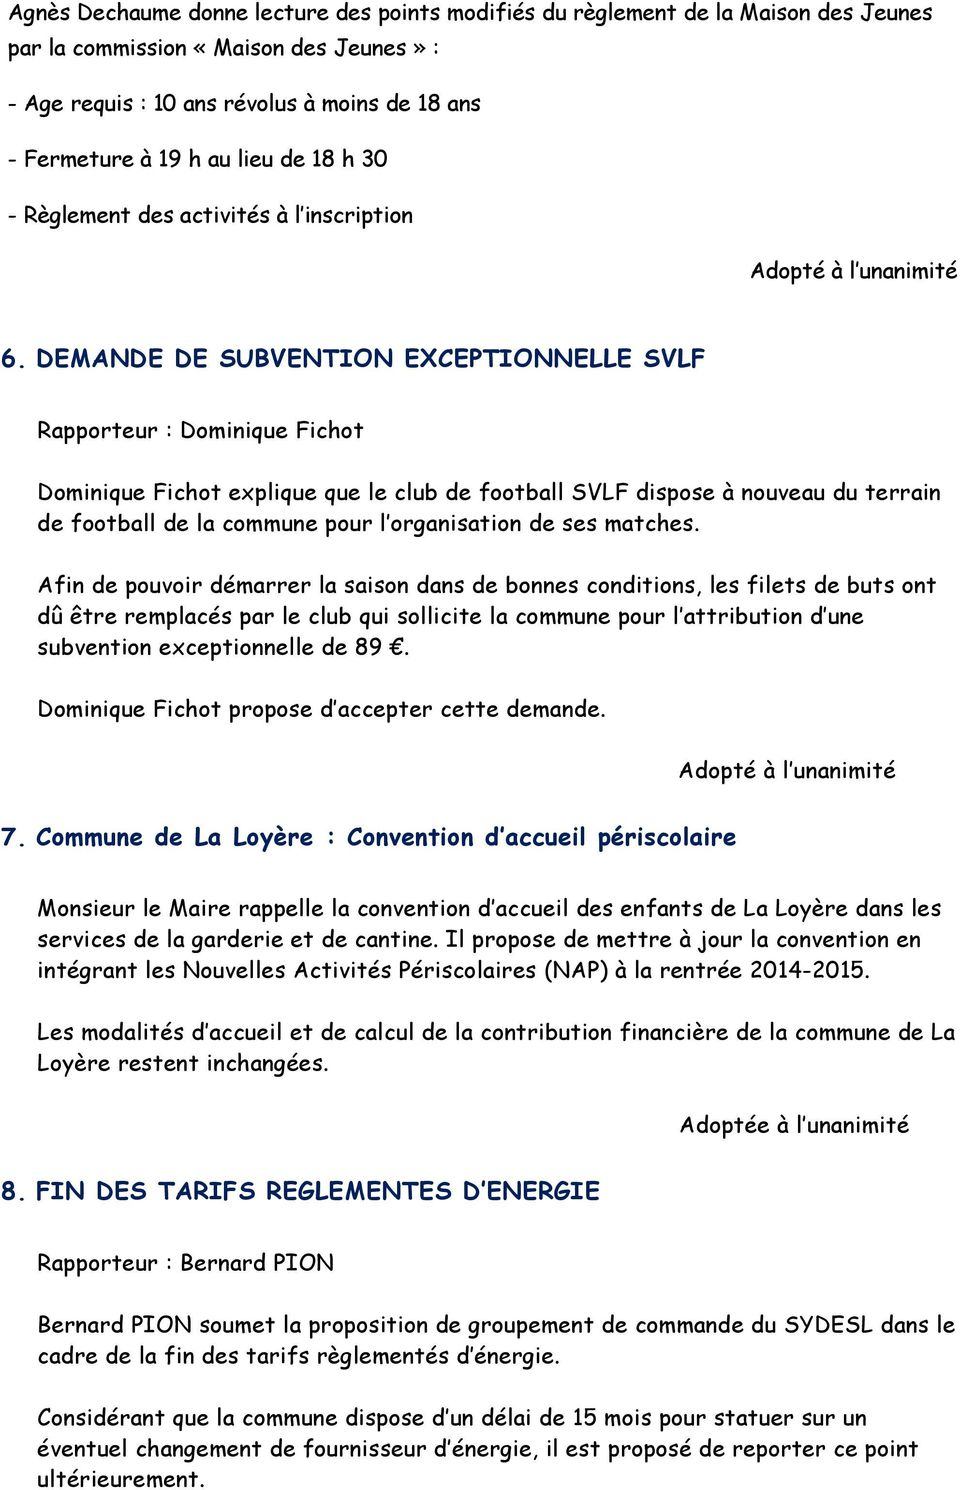 DEMANDE DE SUBVENTION EXCEPTIONNELLE SVLF Rapporteur : Dominique Fichot Dominique Fichot explique que le club de football SVLF dispose à nouveau du terrain de football de la commune pour l